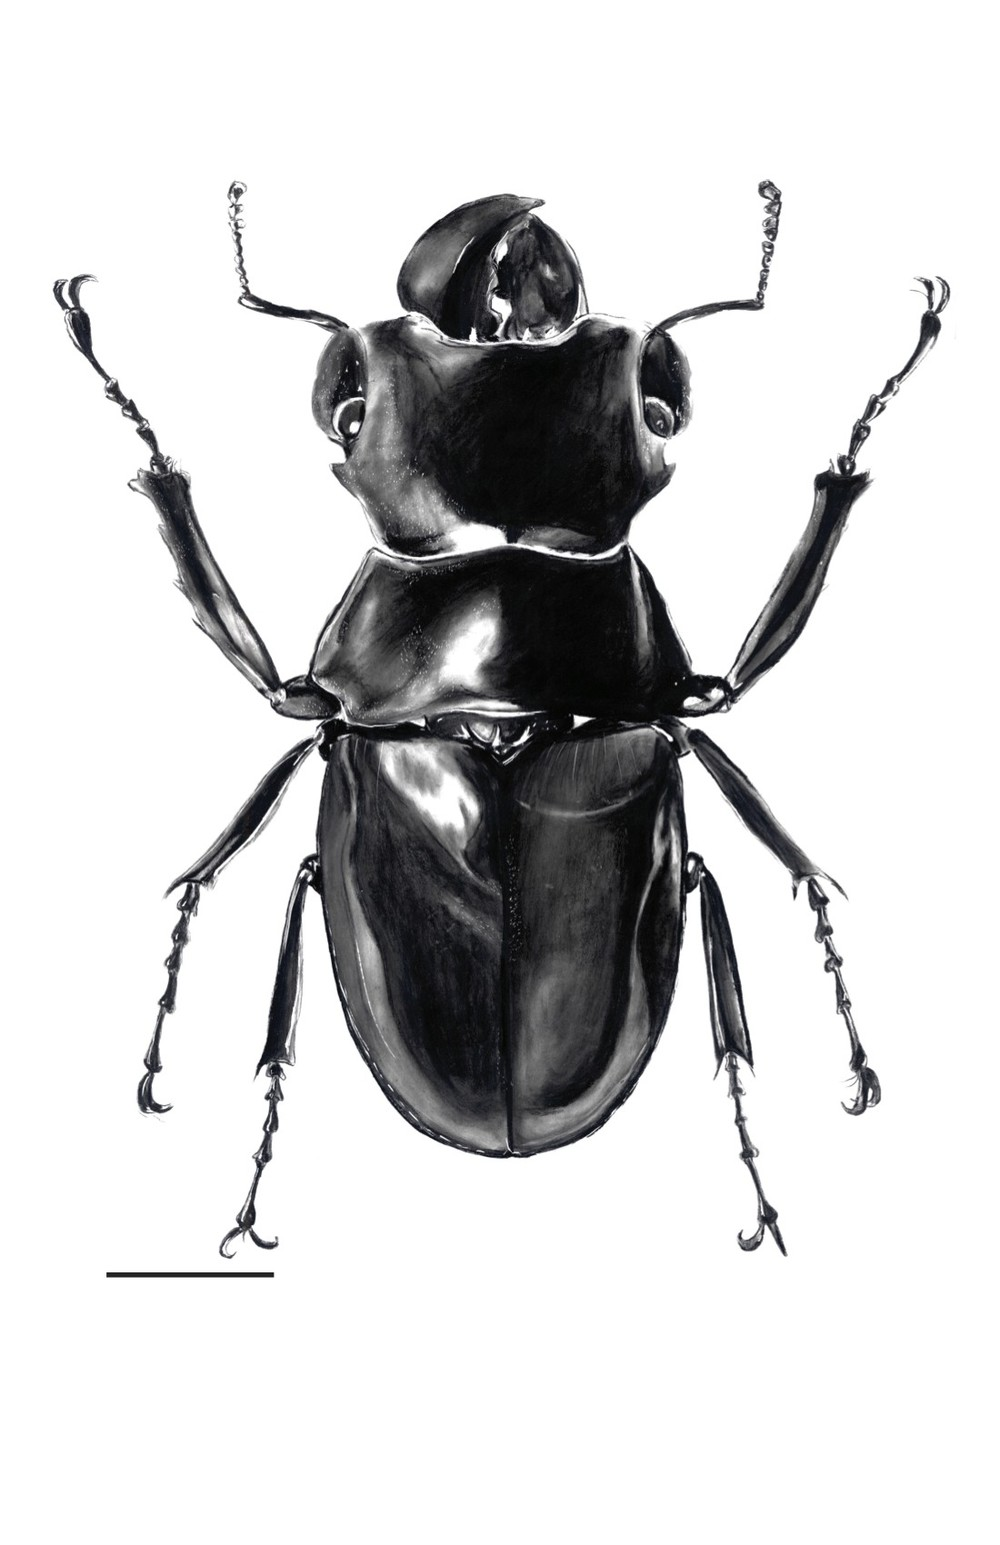 beetle edited.jpg